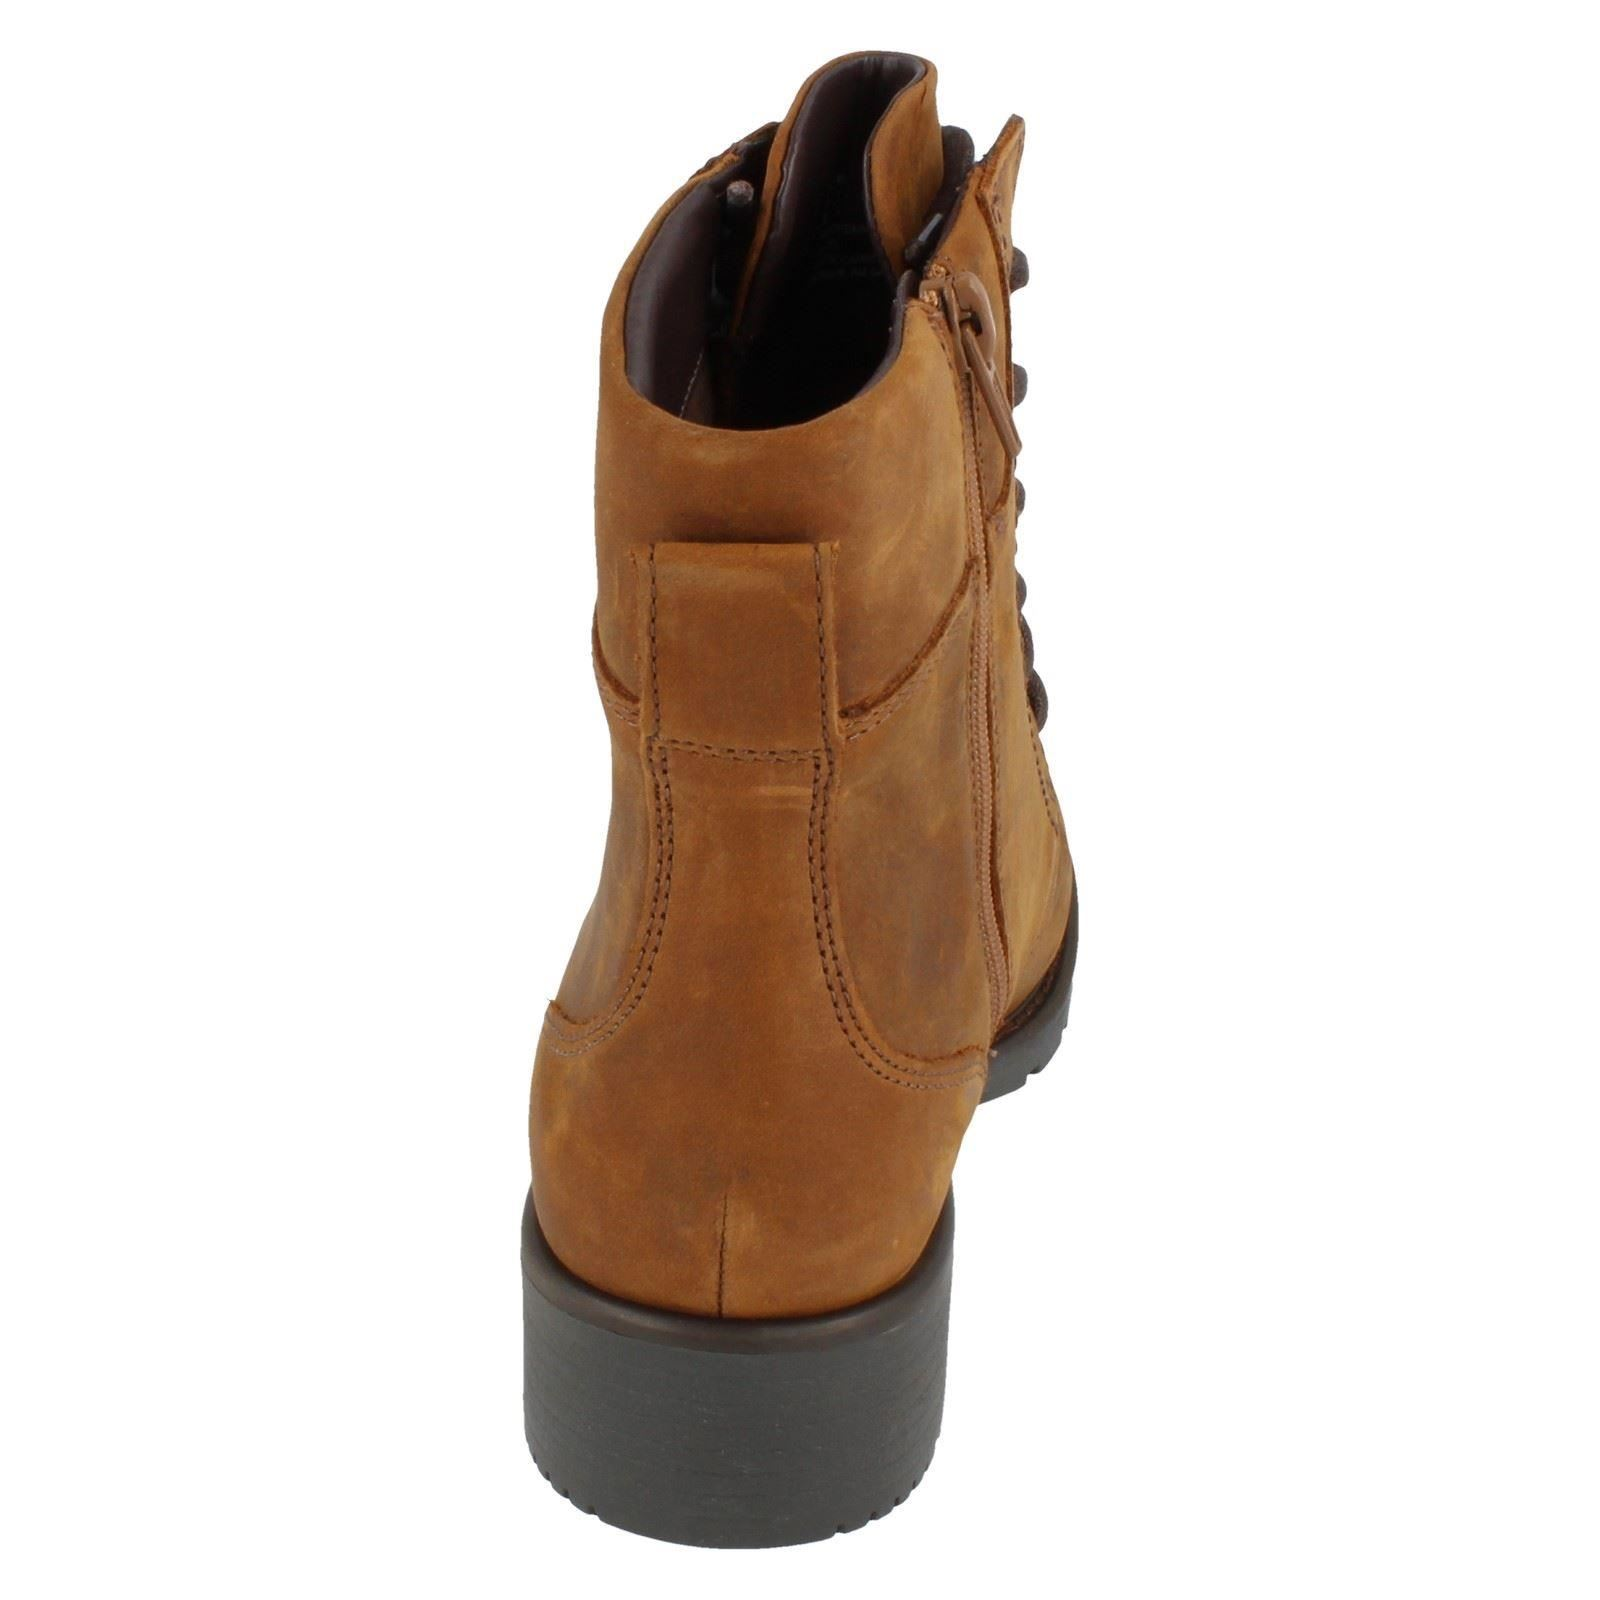 Ladies-Clarks-Casual-Lace-Up-Inside-Zip-Nubuck-Leather-Ankle-Boots-Orinoco-Spice thumbnail 14